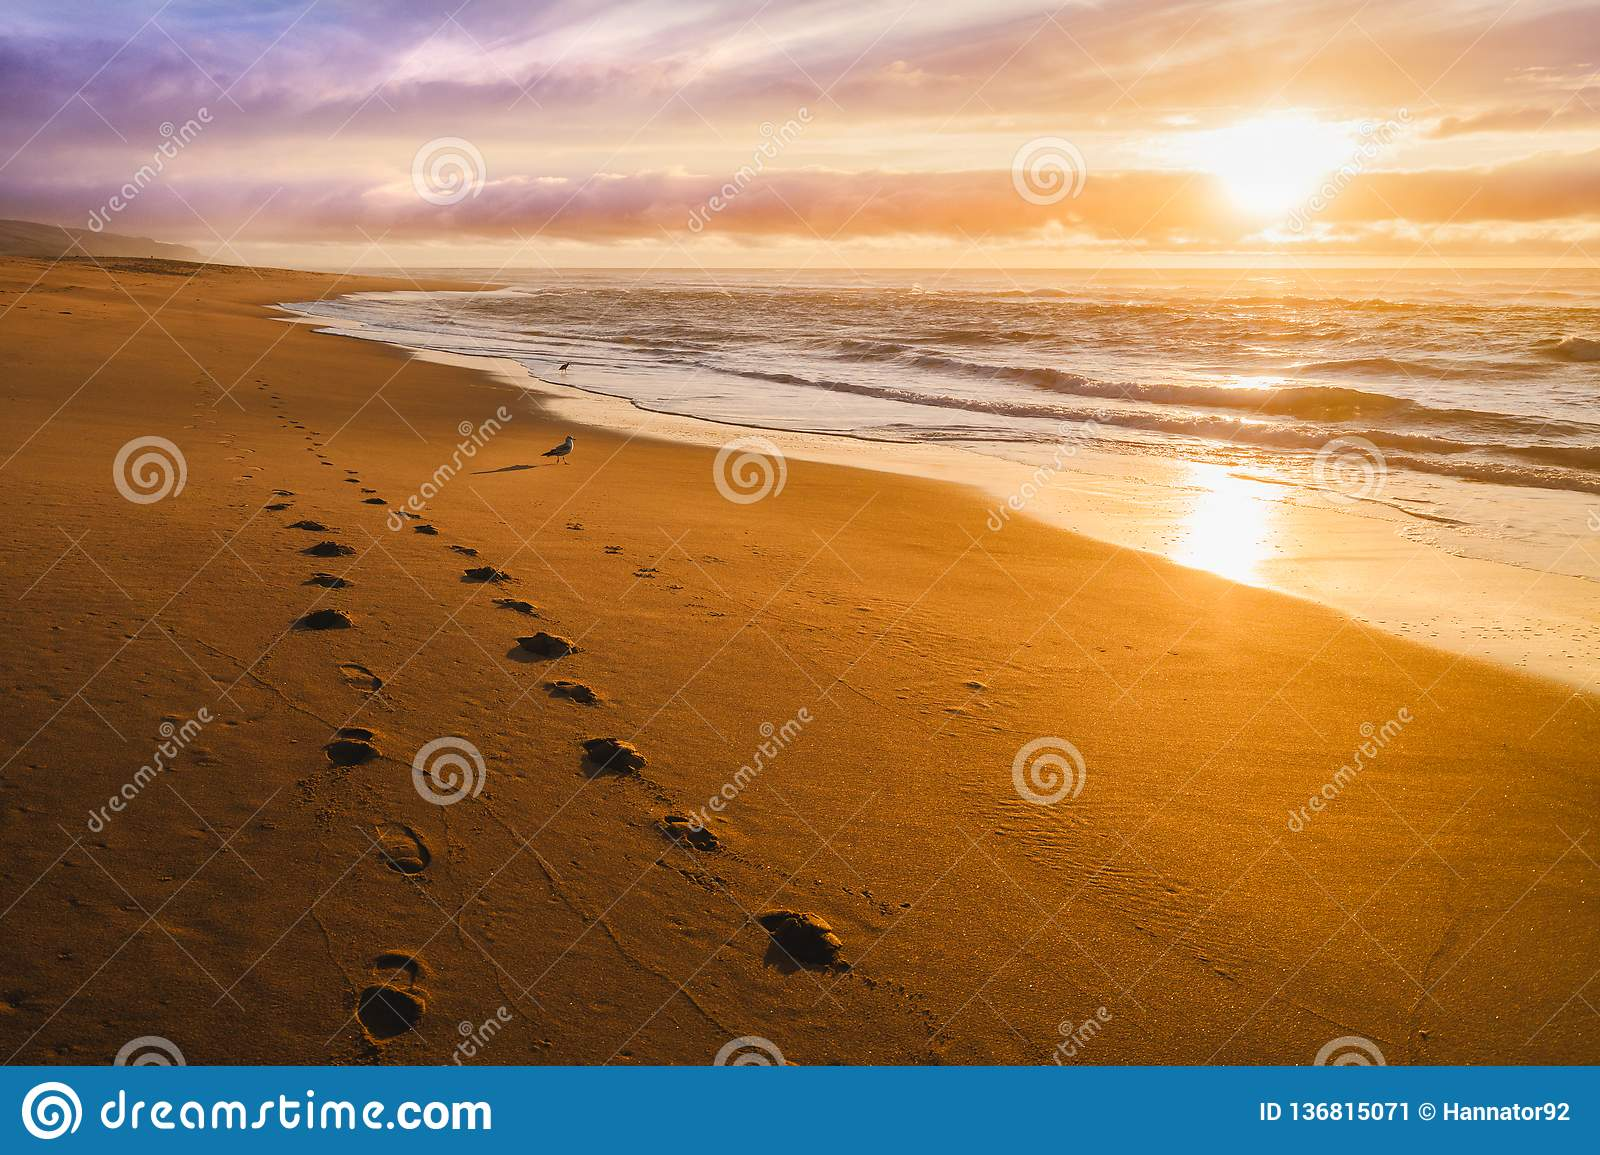 Beautiful sunset on the beach with lonely birds